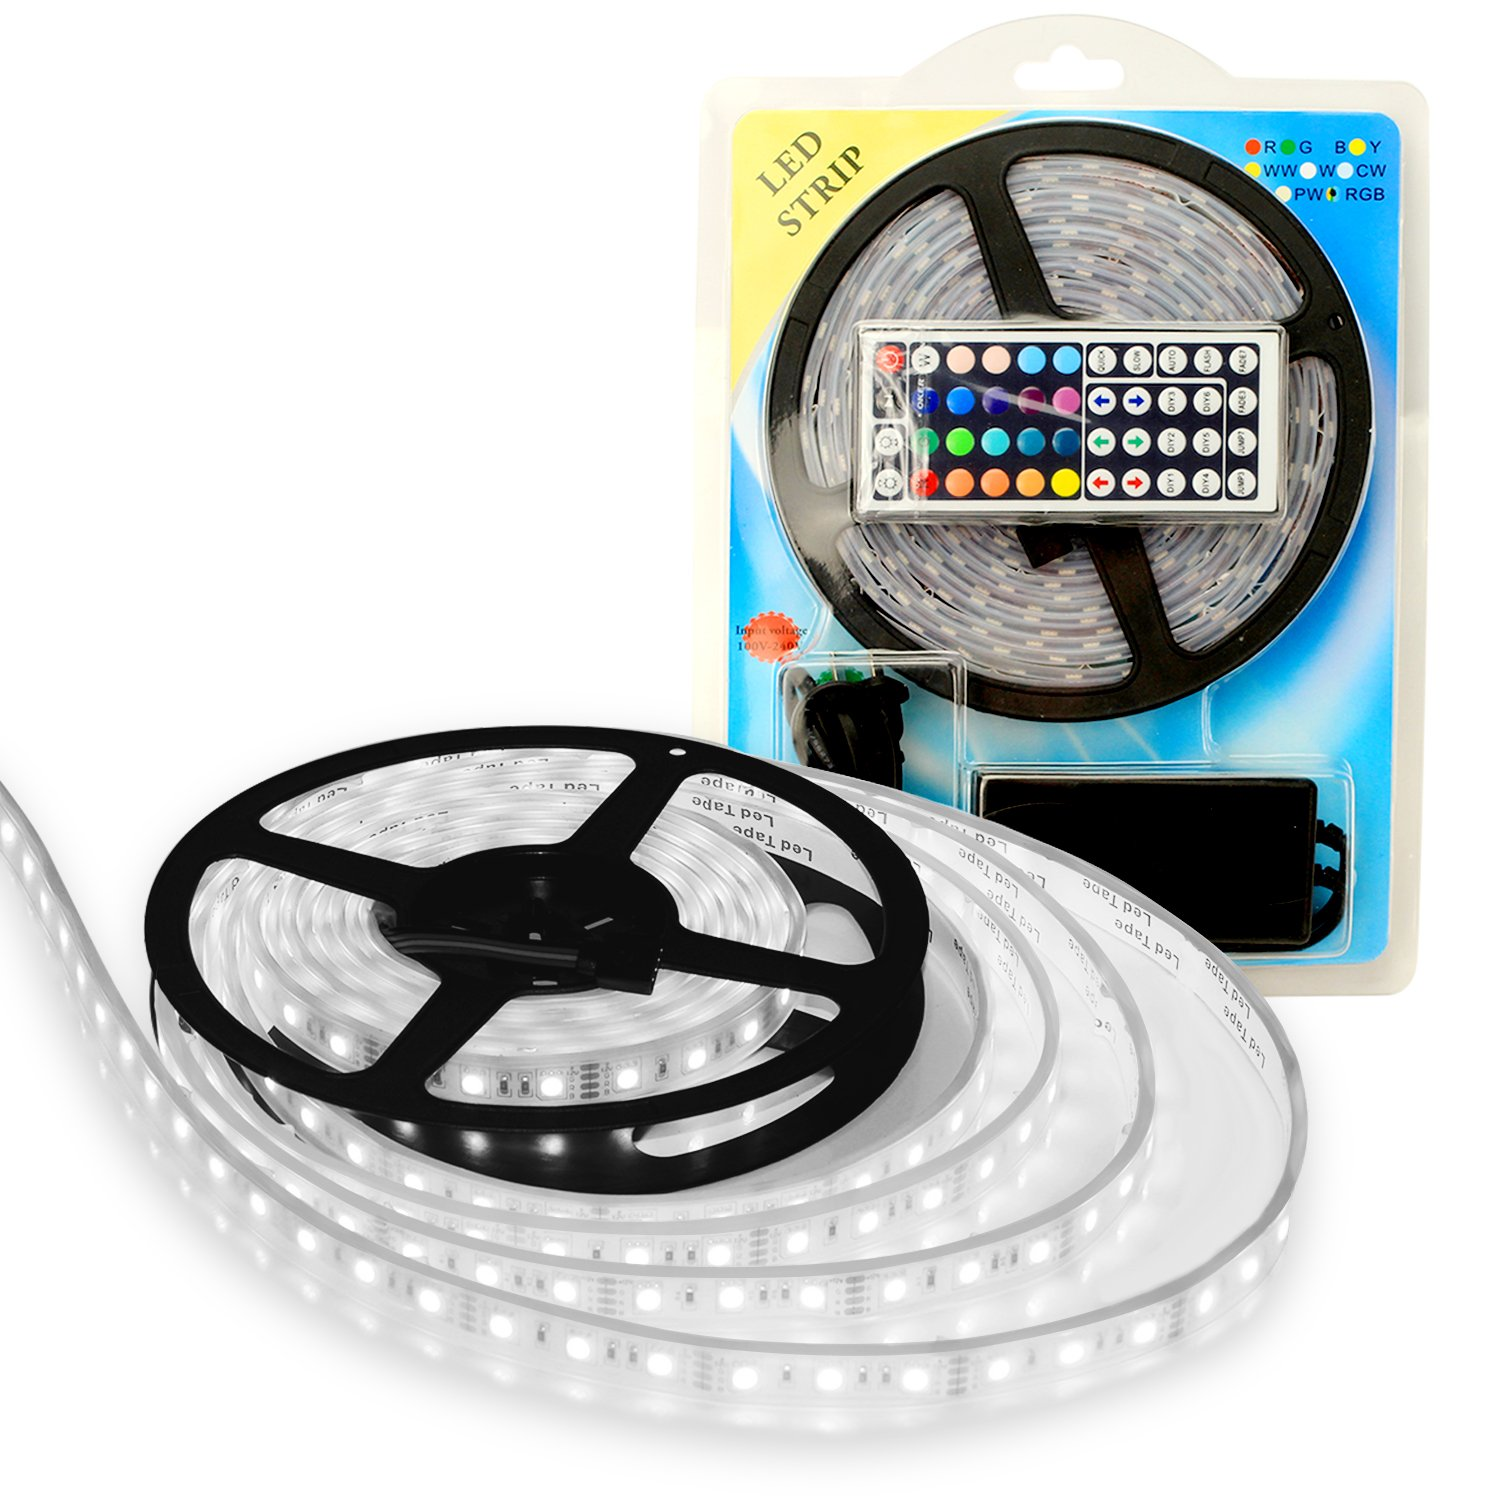 Amazon lightplus 164 ft 5m rgb led strip flexible 300 amazon lightplus 164 ft 5m rgb led strip flexible 300 leds color changing rgb smd5050 led light strip powerful bright and long lasting lights mozeypictures Choice Image